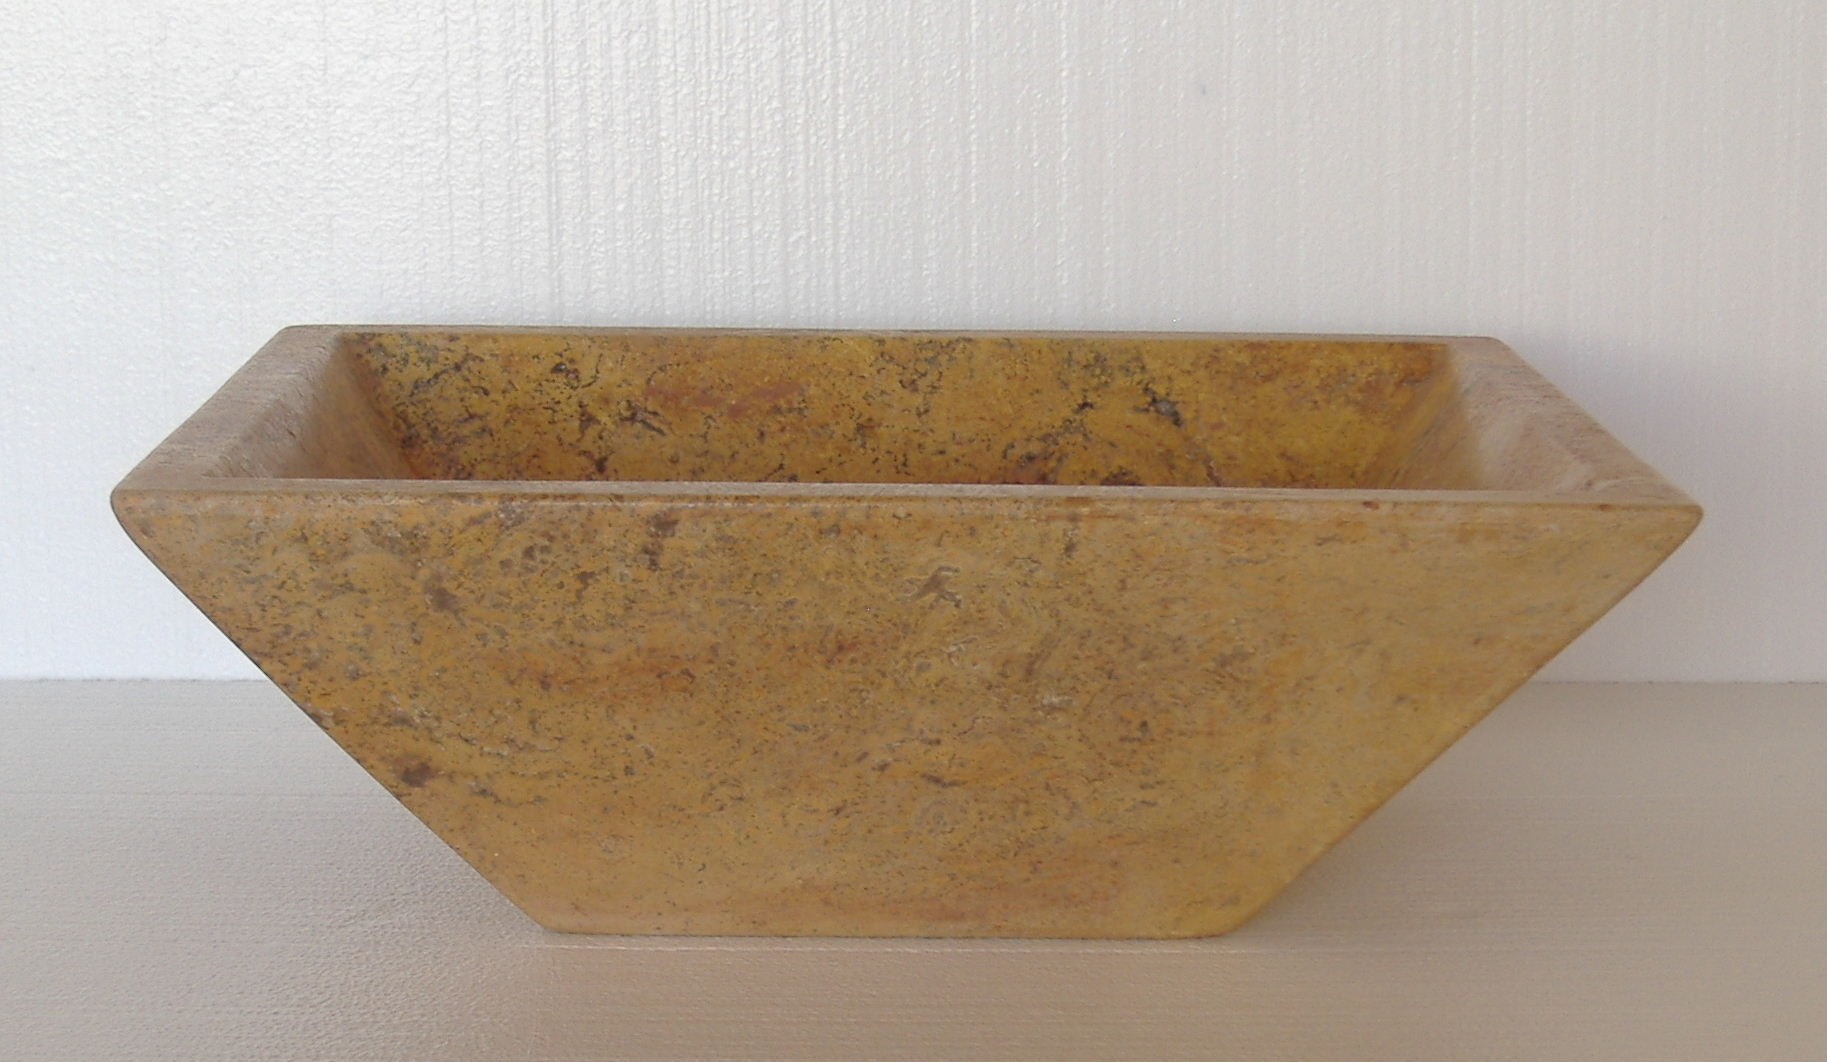 Travertine Sinks Travertine Vessel Sinks Travertine Bathroom ...